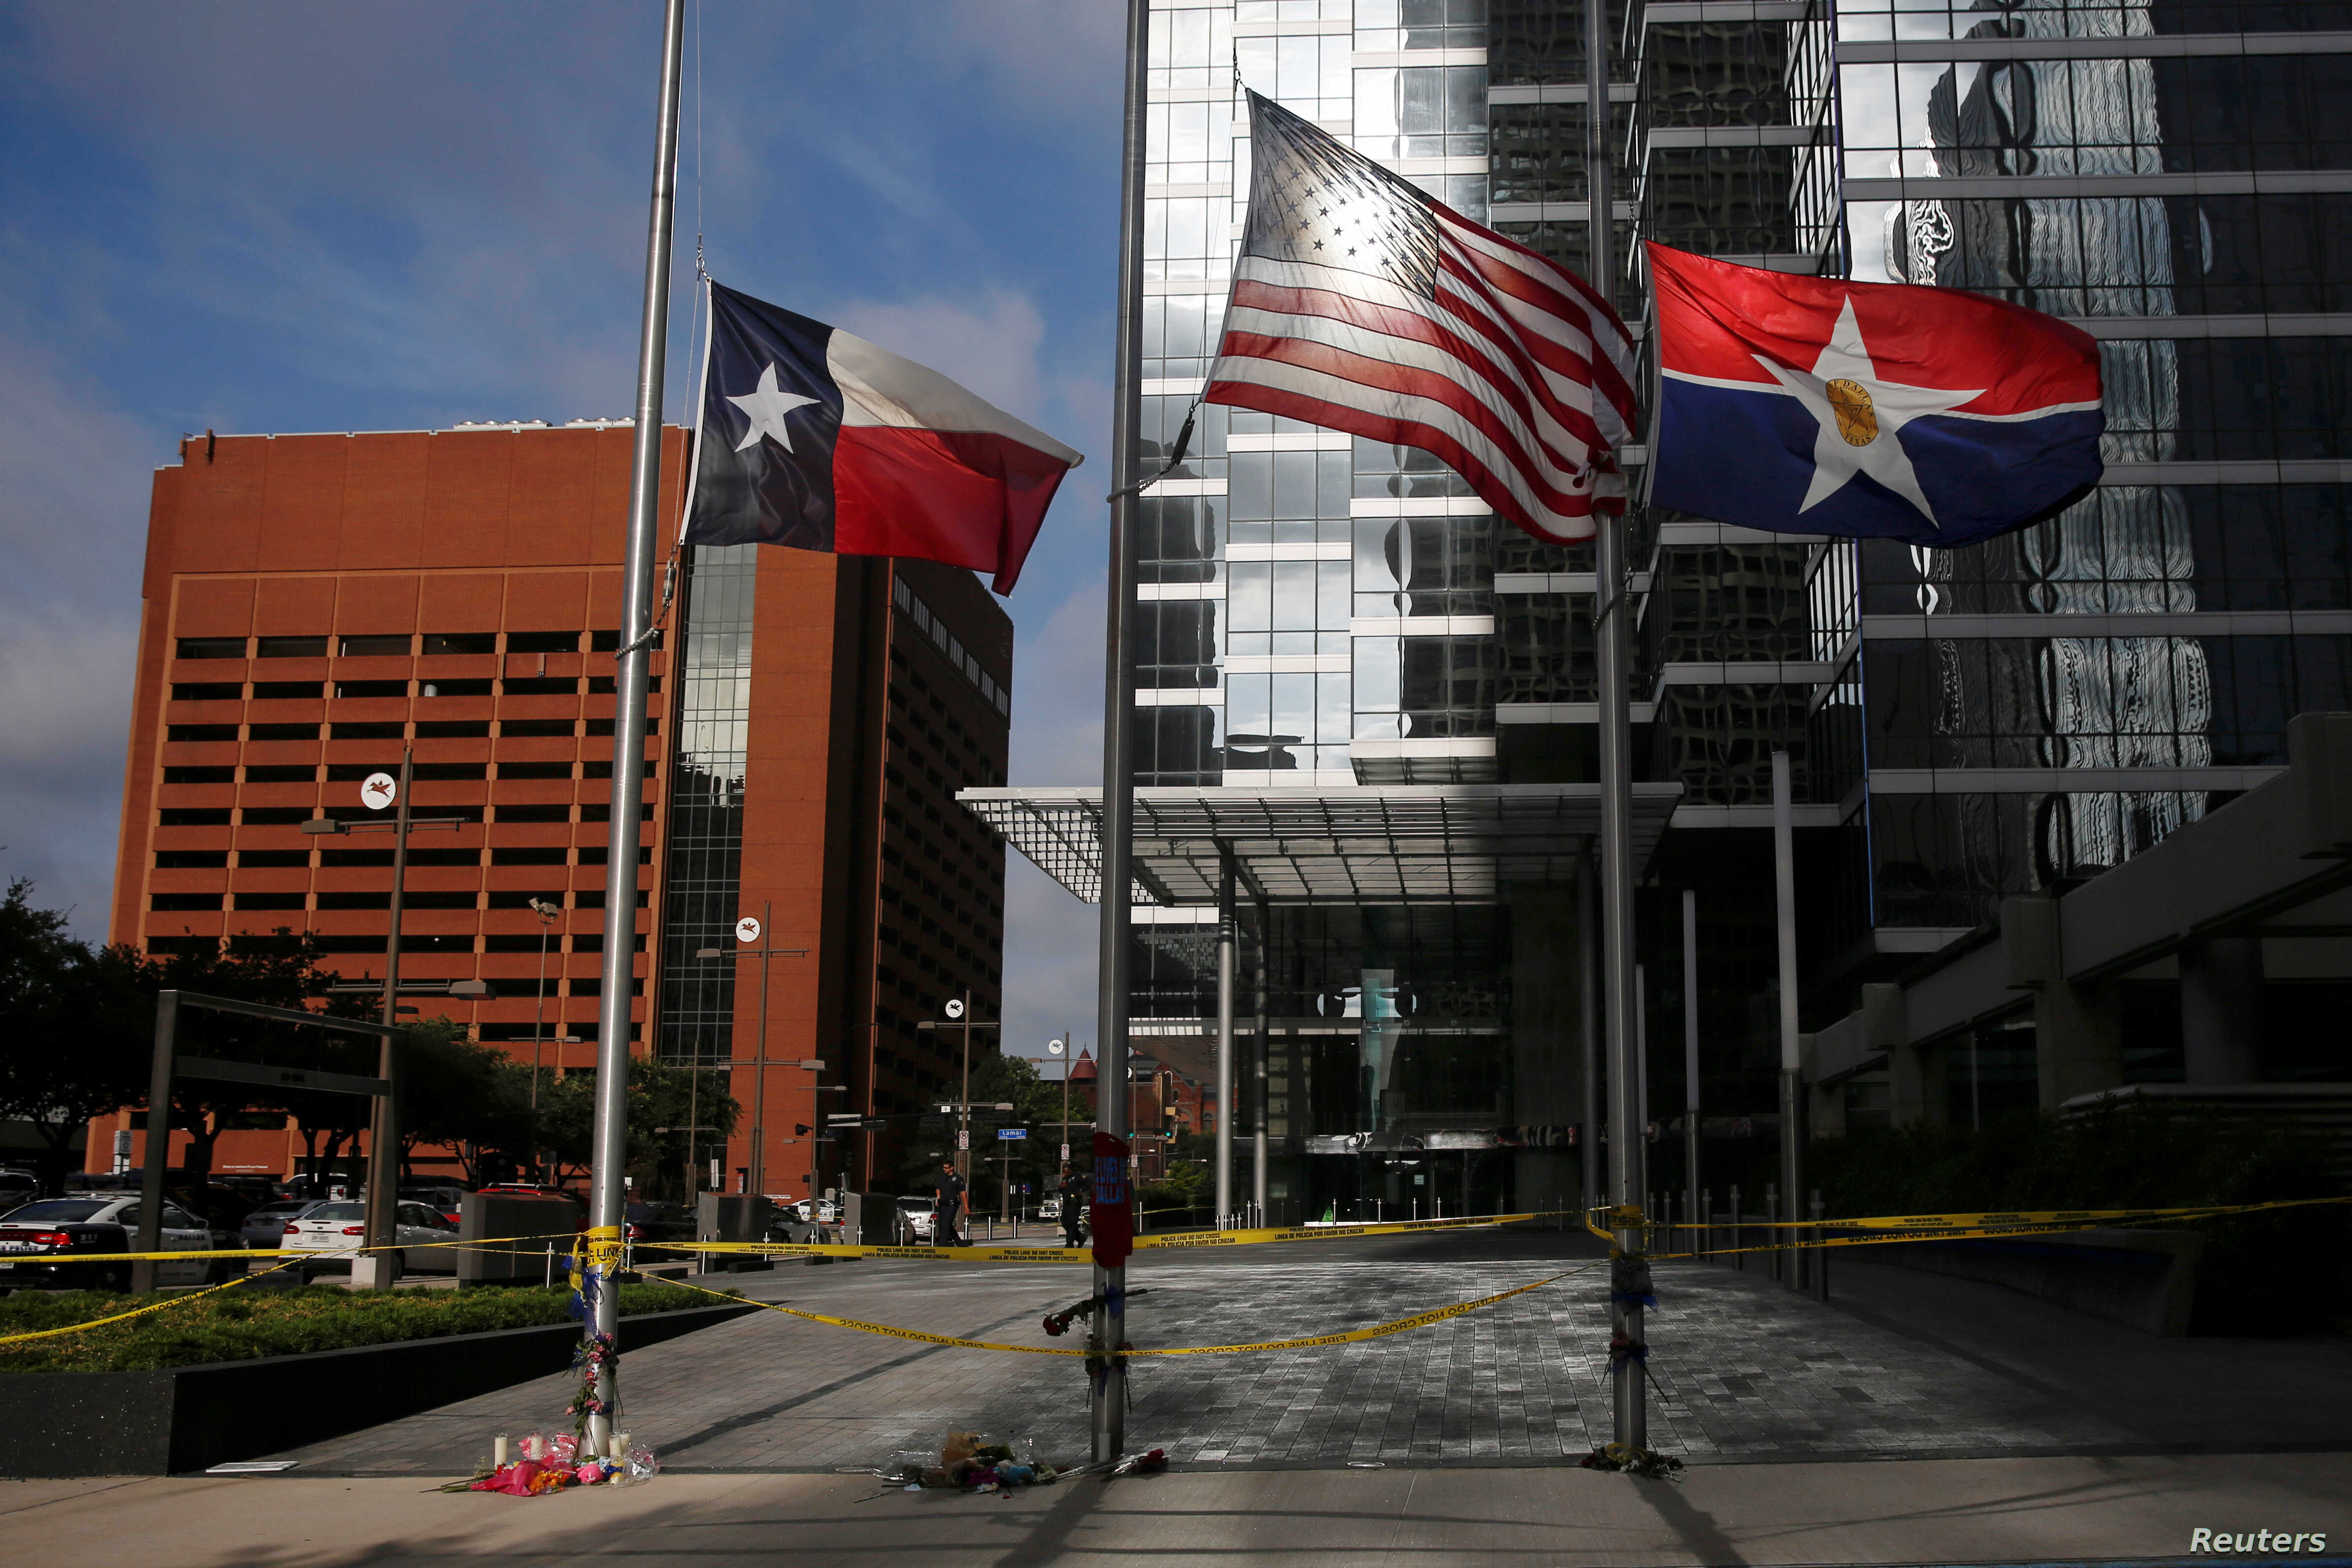 Flags fly at half-staff at a makeshift memorial near the crime scene two days after a gunman ambushed and killed five police officers at a protest decrying police shootings of black men, in Dallas, July 9, 2016.